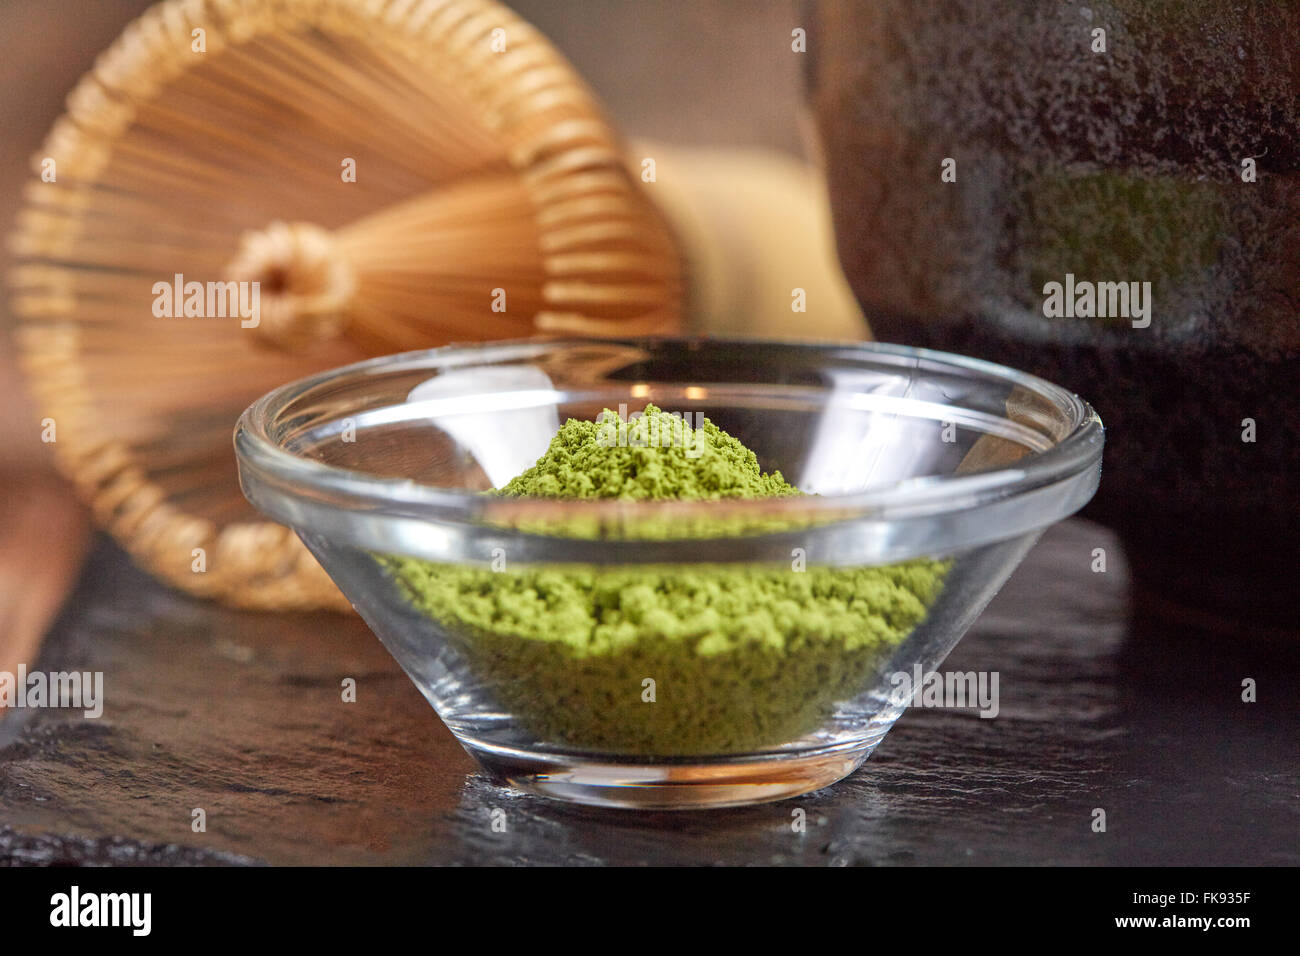 Green matcha tea and whisk on black stone plate on a wooden table - Stock Image